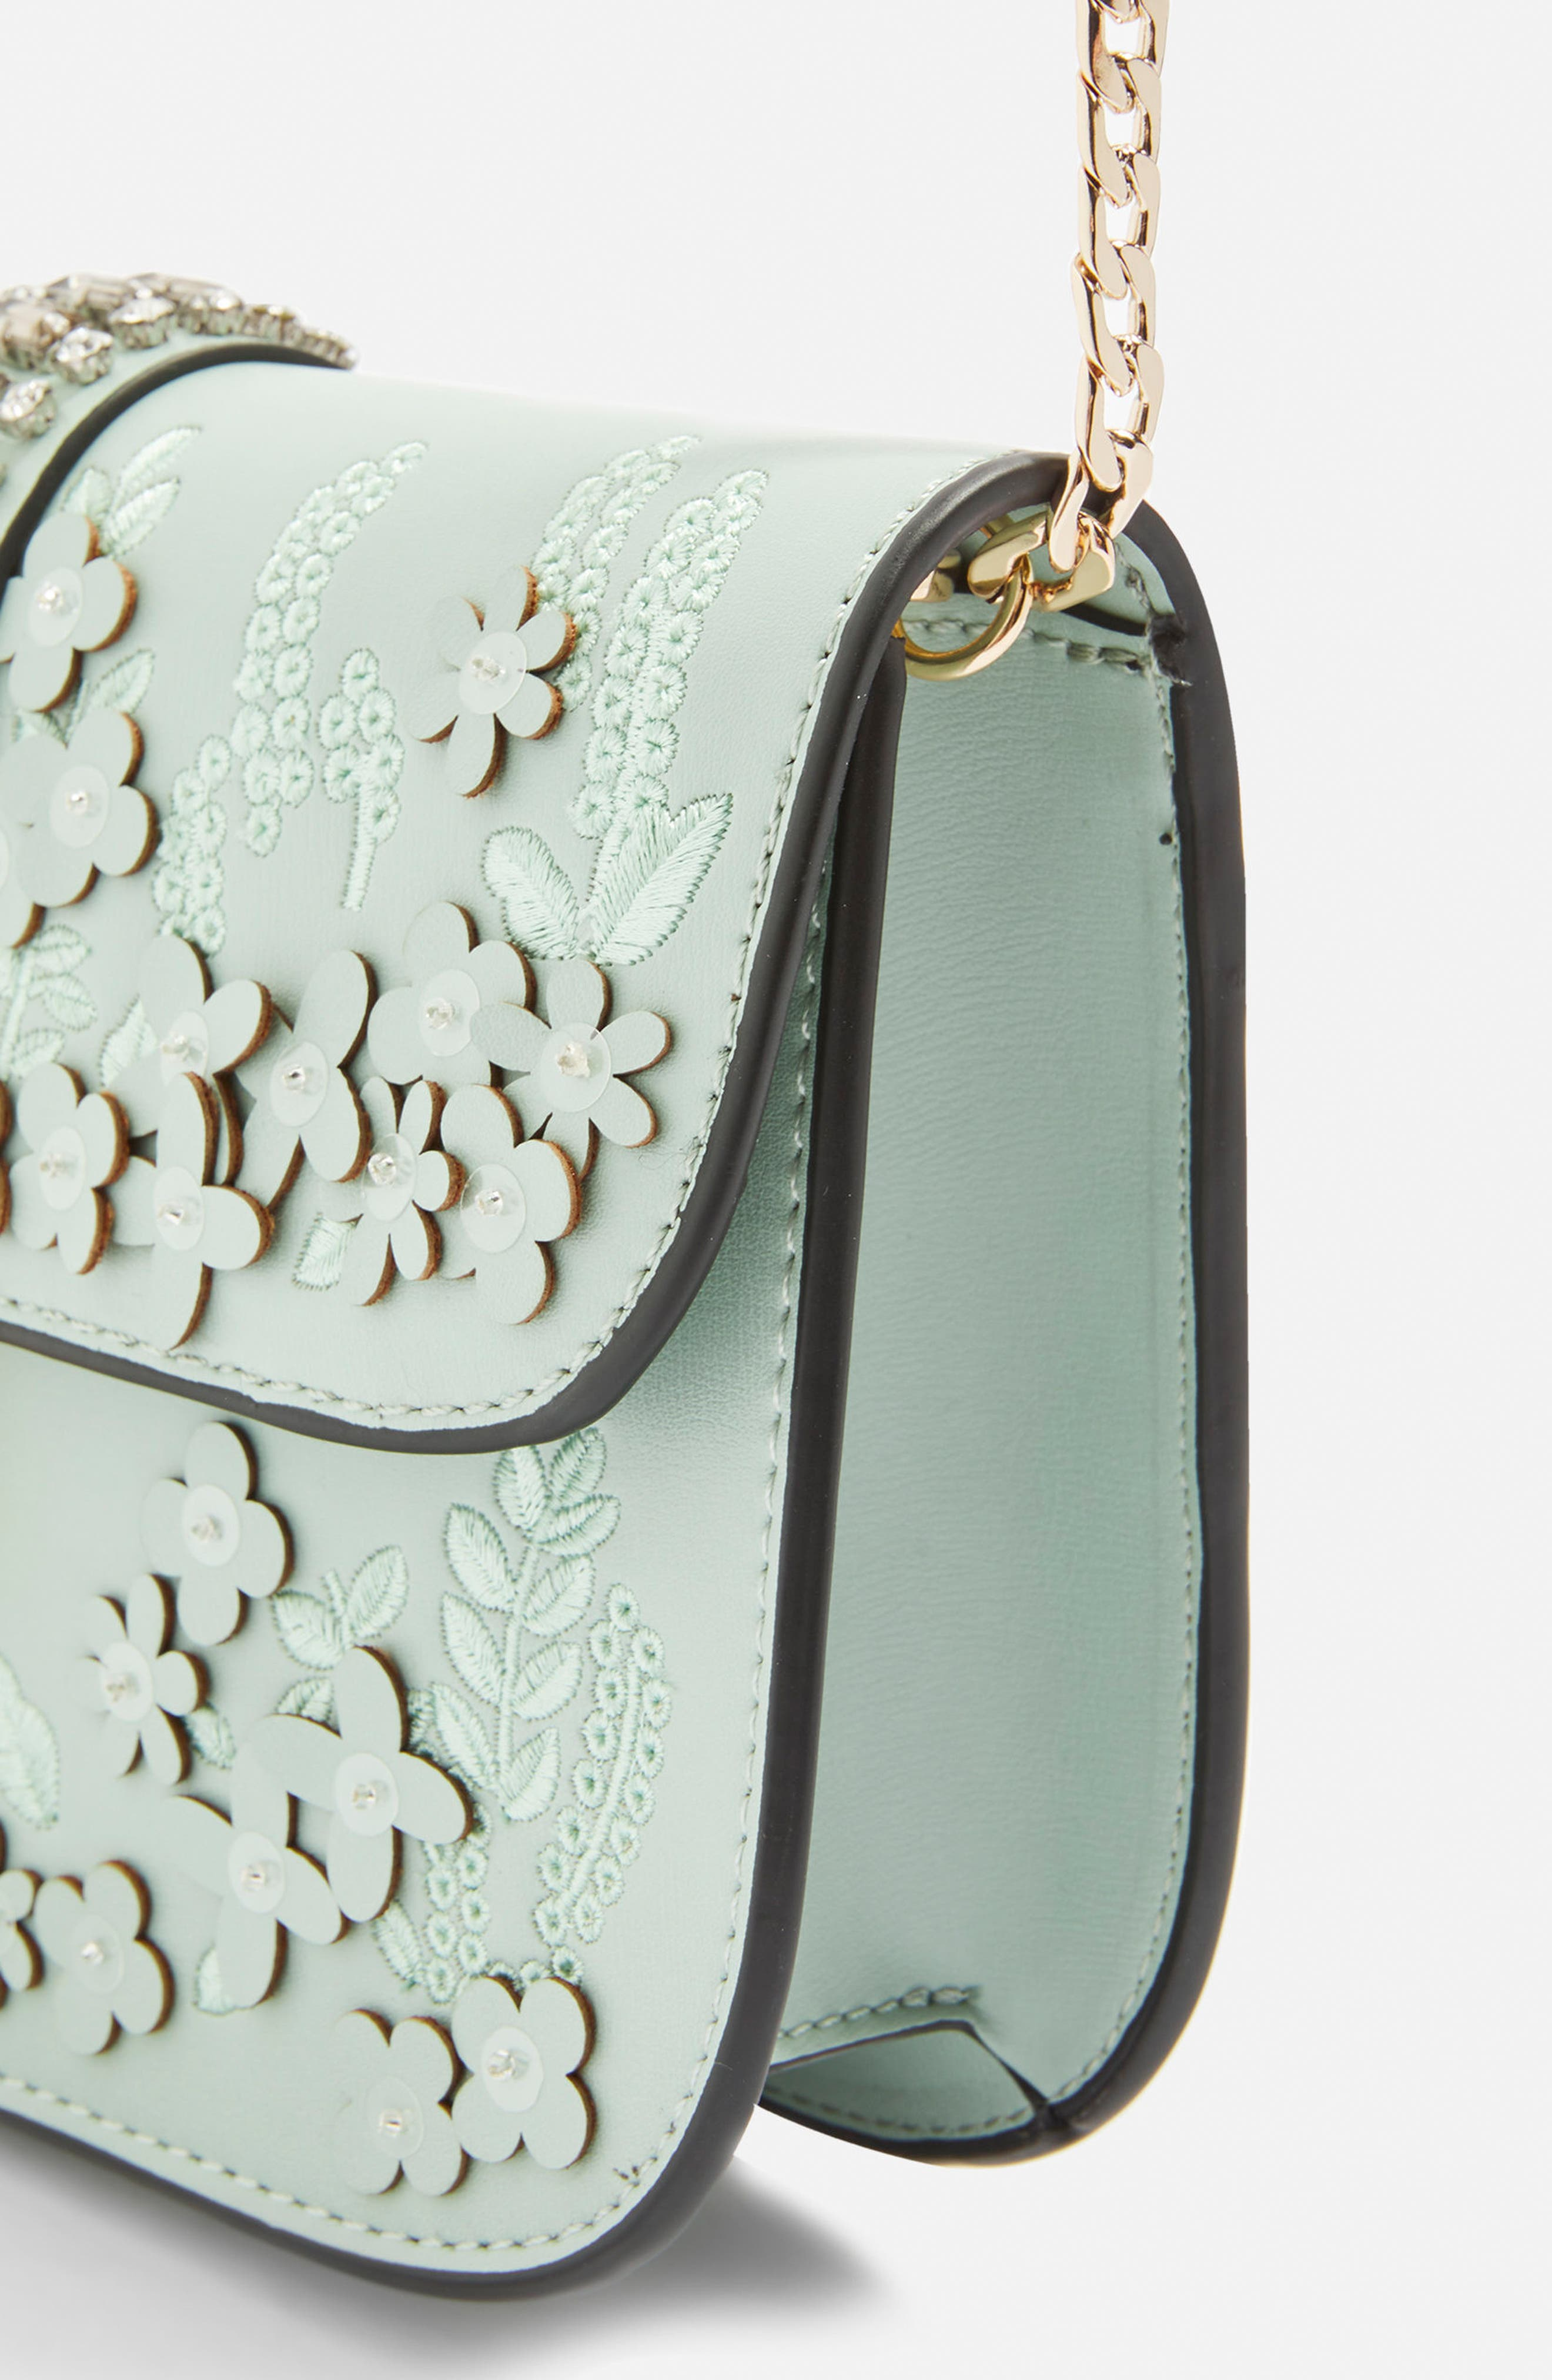 Petal 3D Flower Embroidered Crossbody Bag,                             Alternate thumbnail 4, color,                             Mint